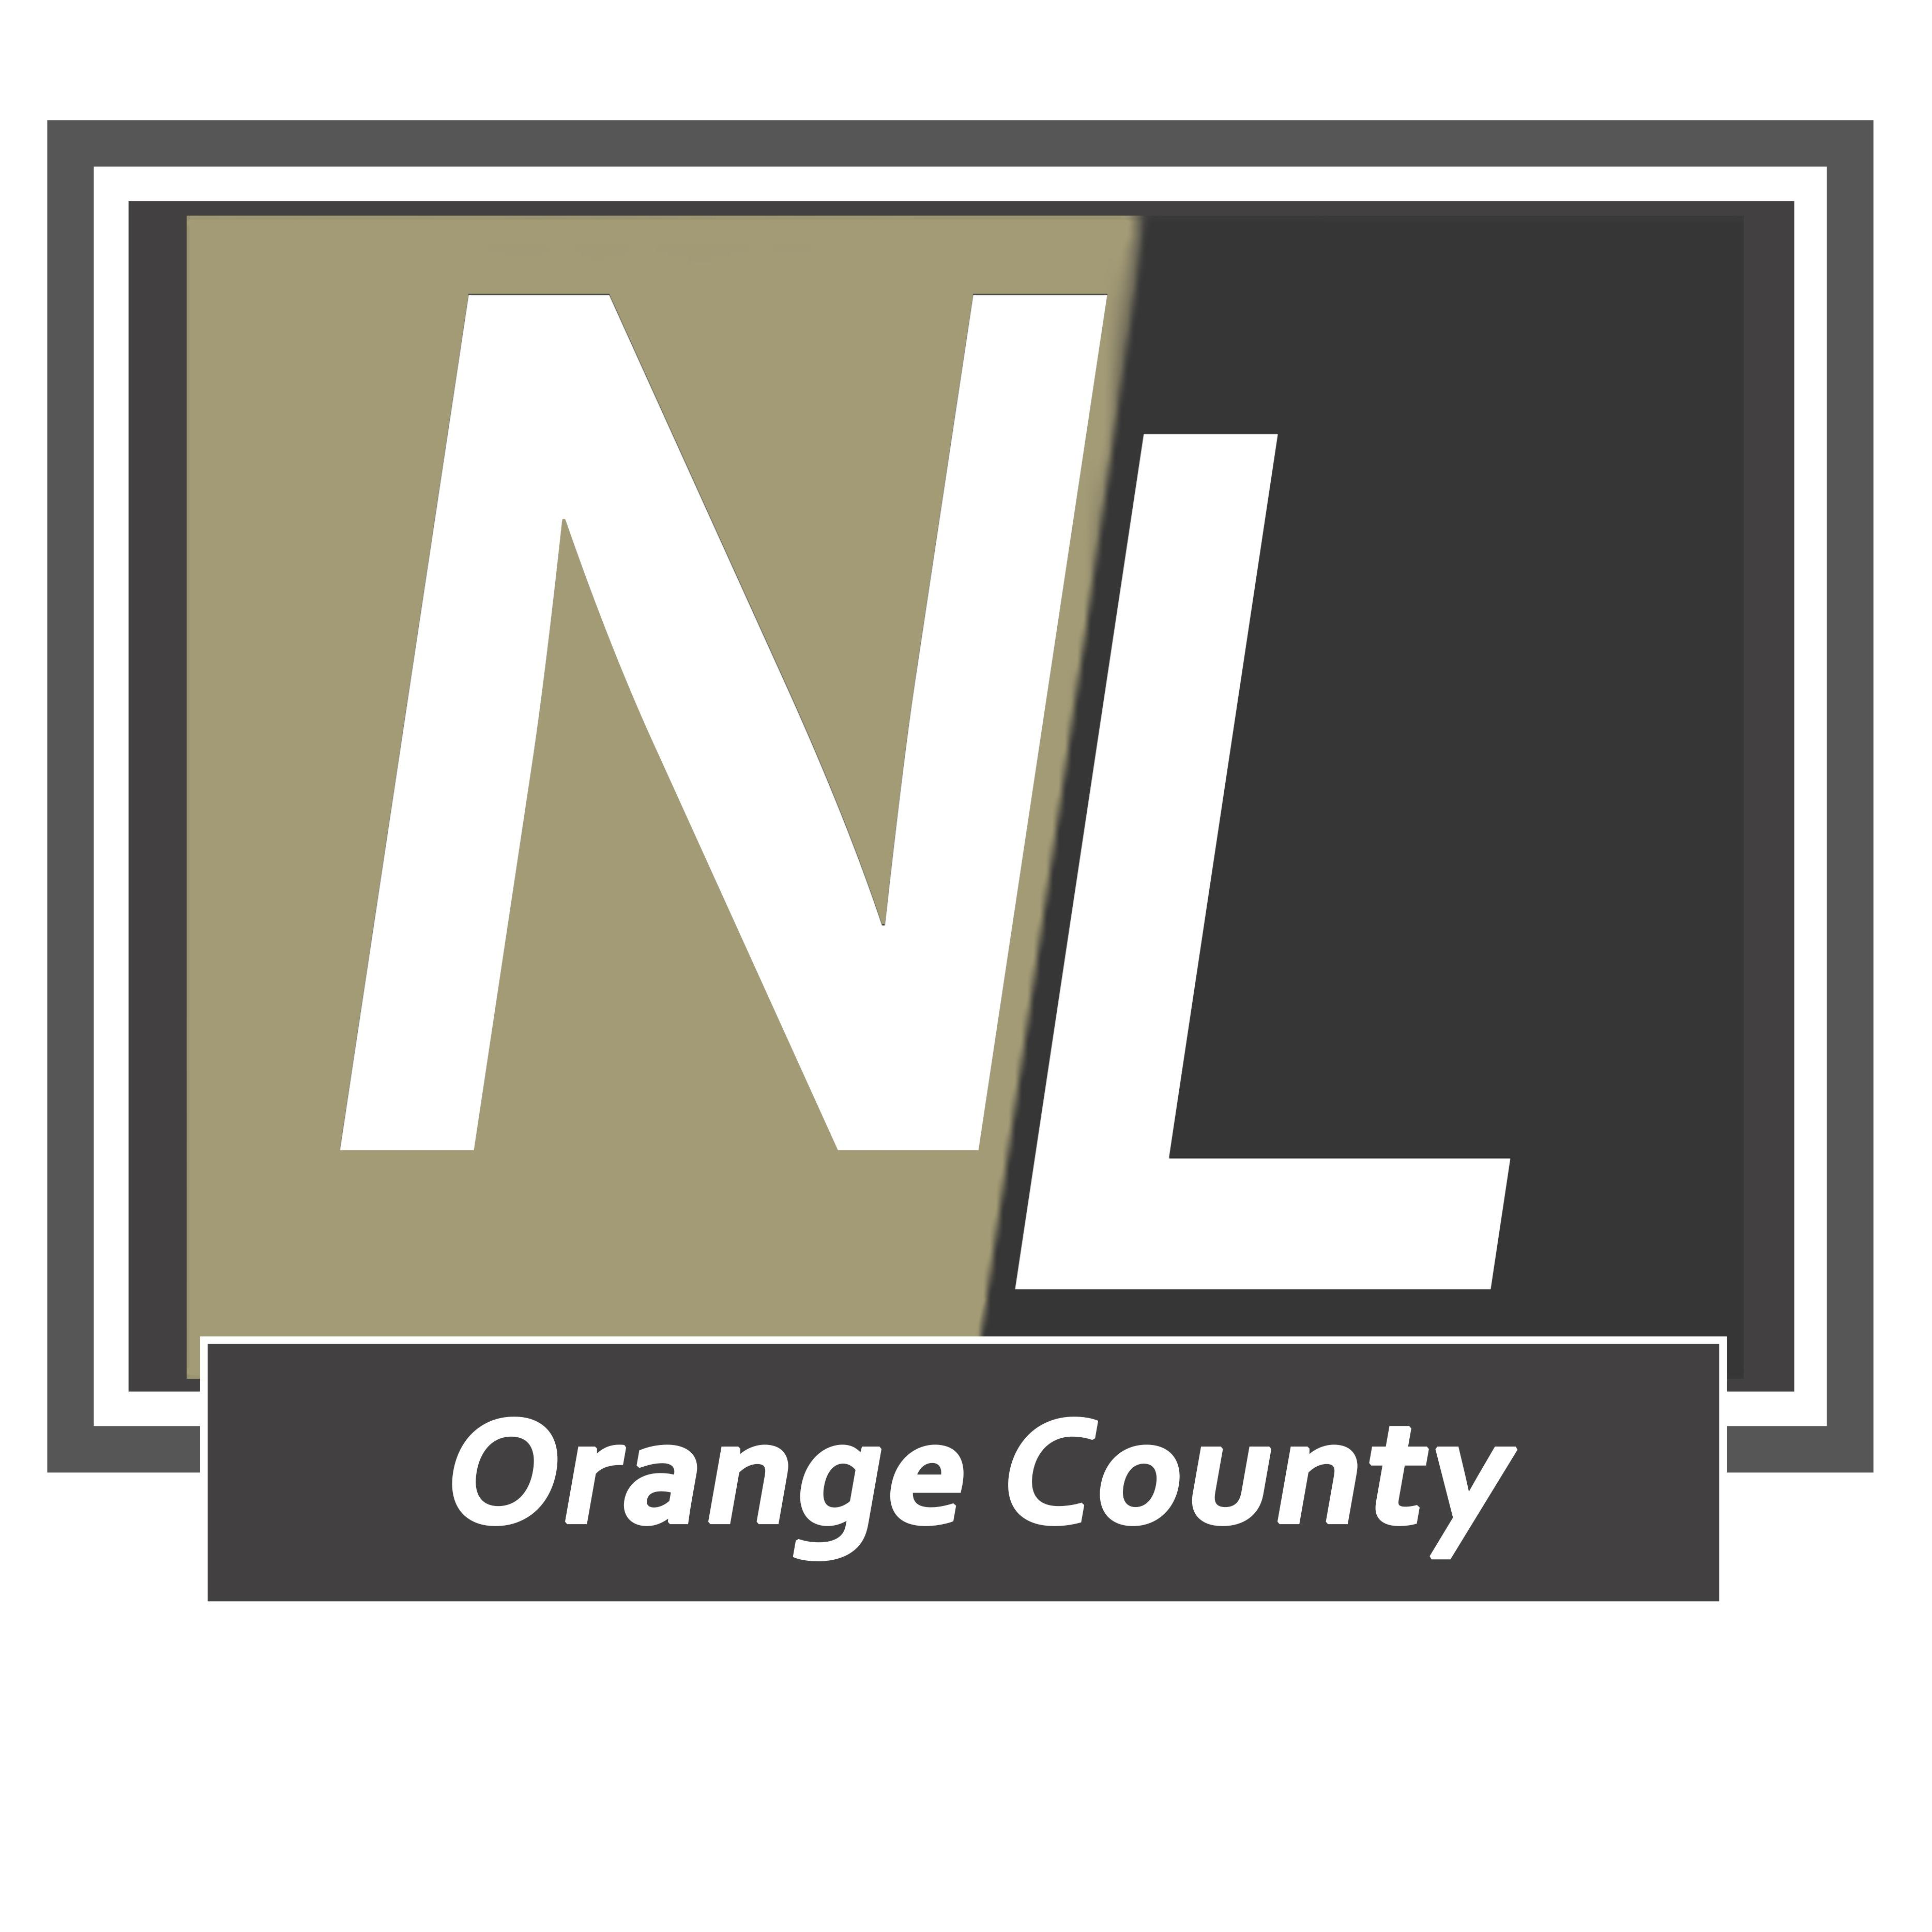 Napolin Law Orange County